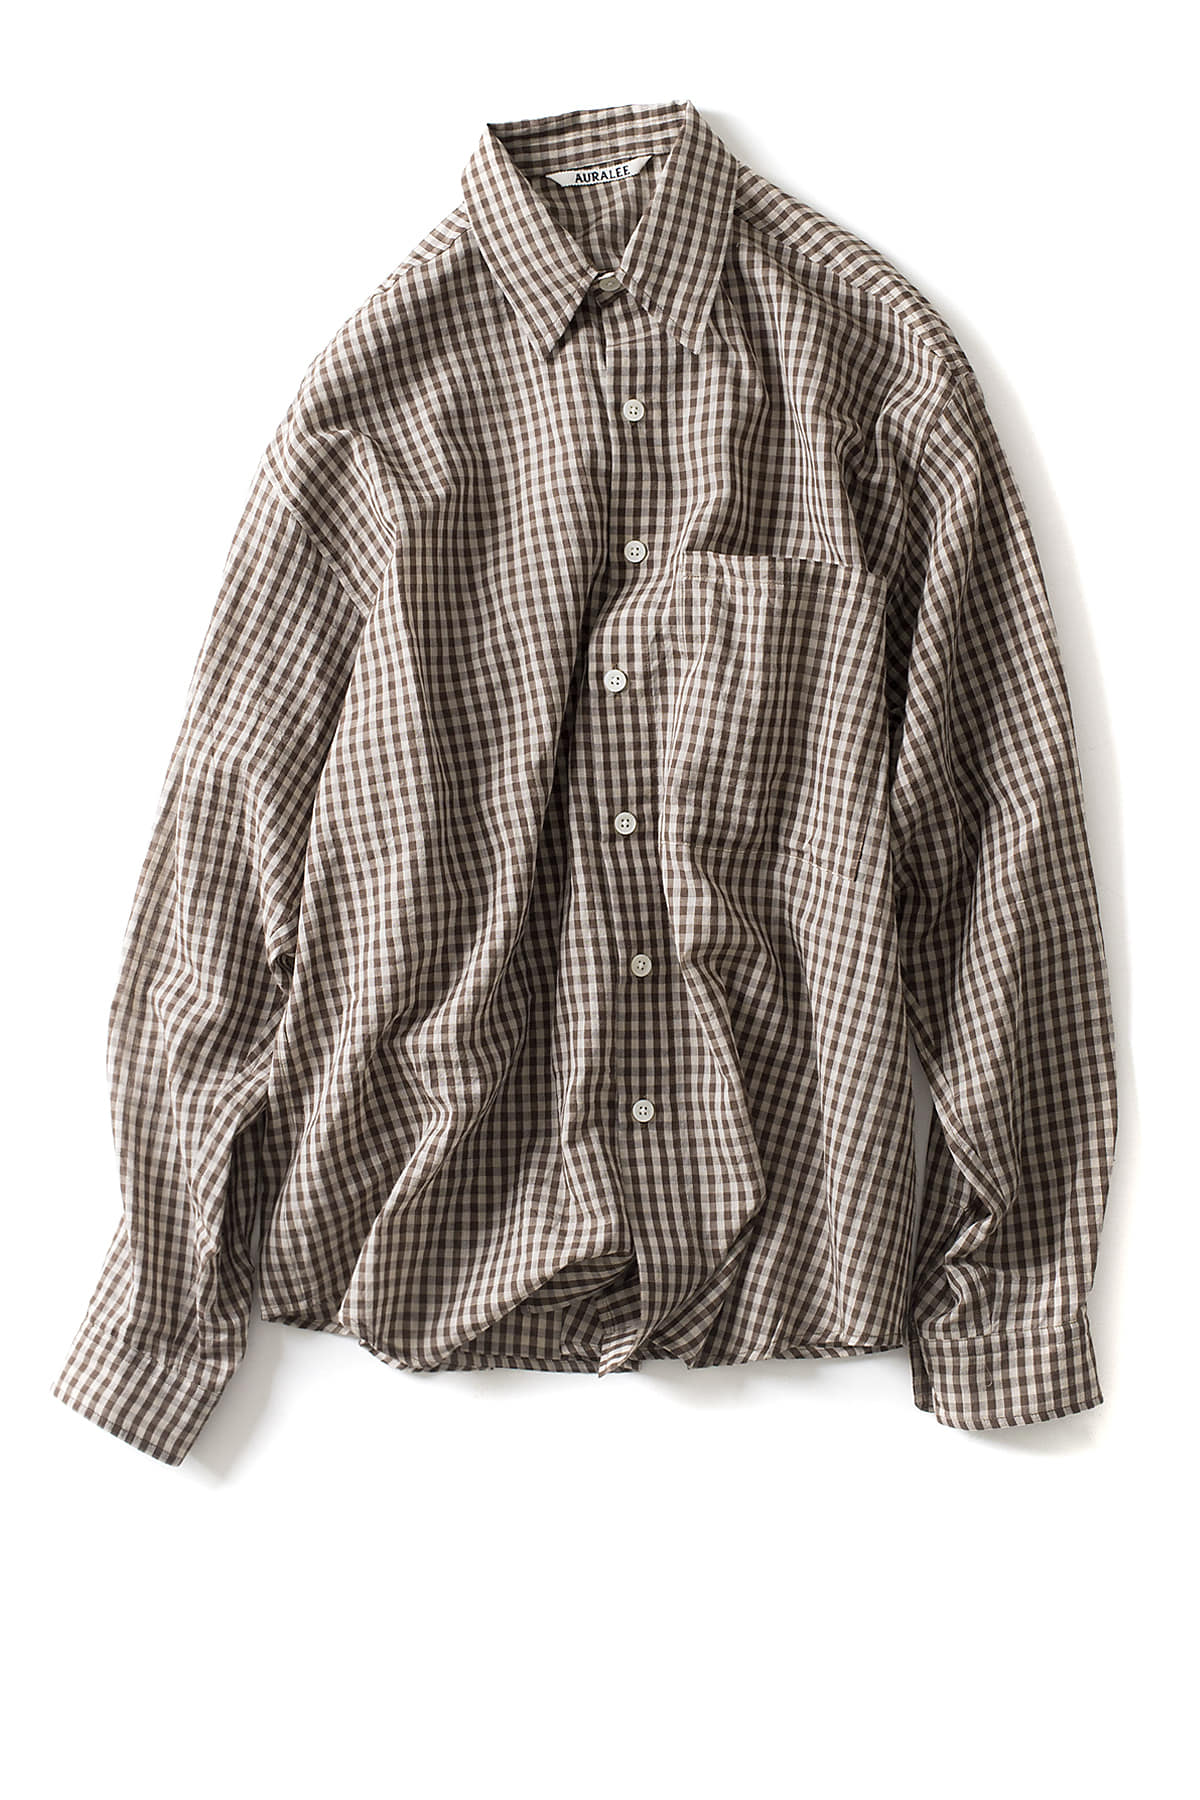 Auralee : Super Light Check Big Shirts (Gingham)